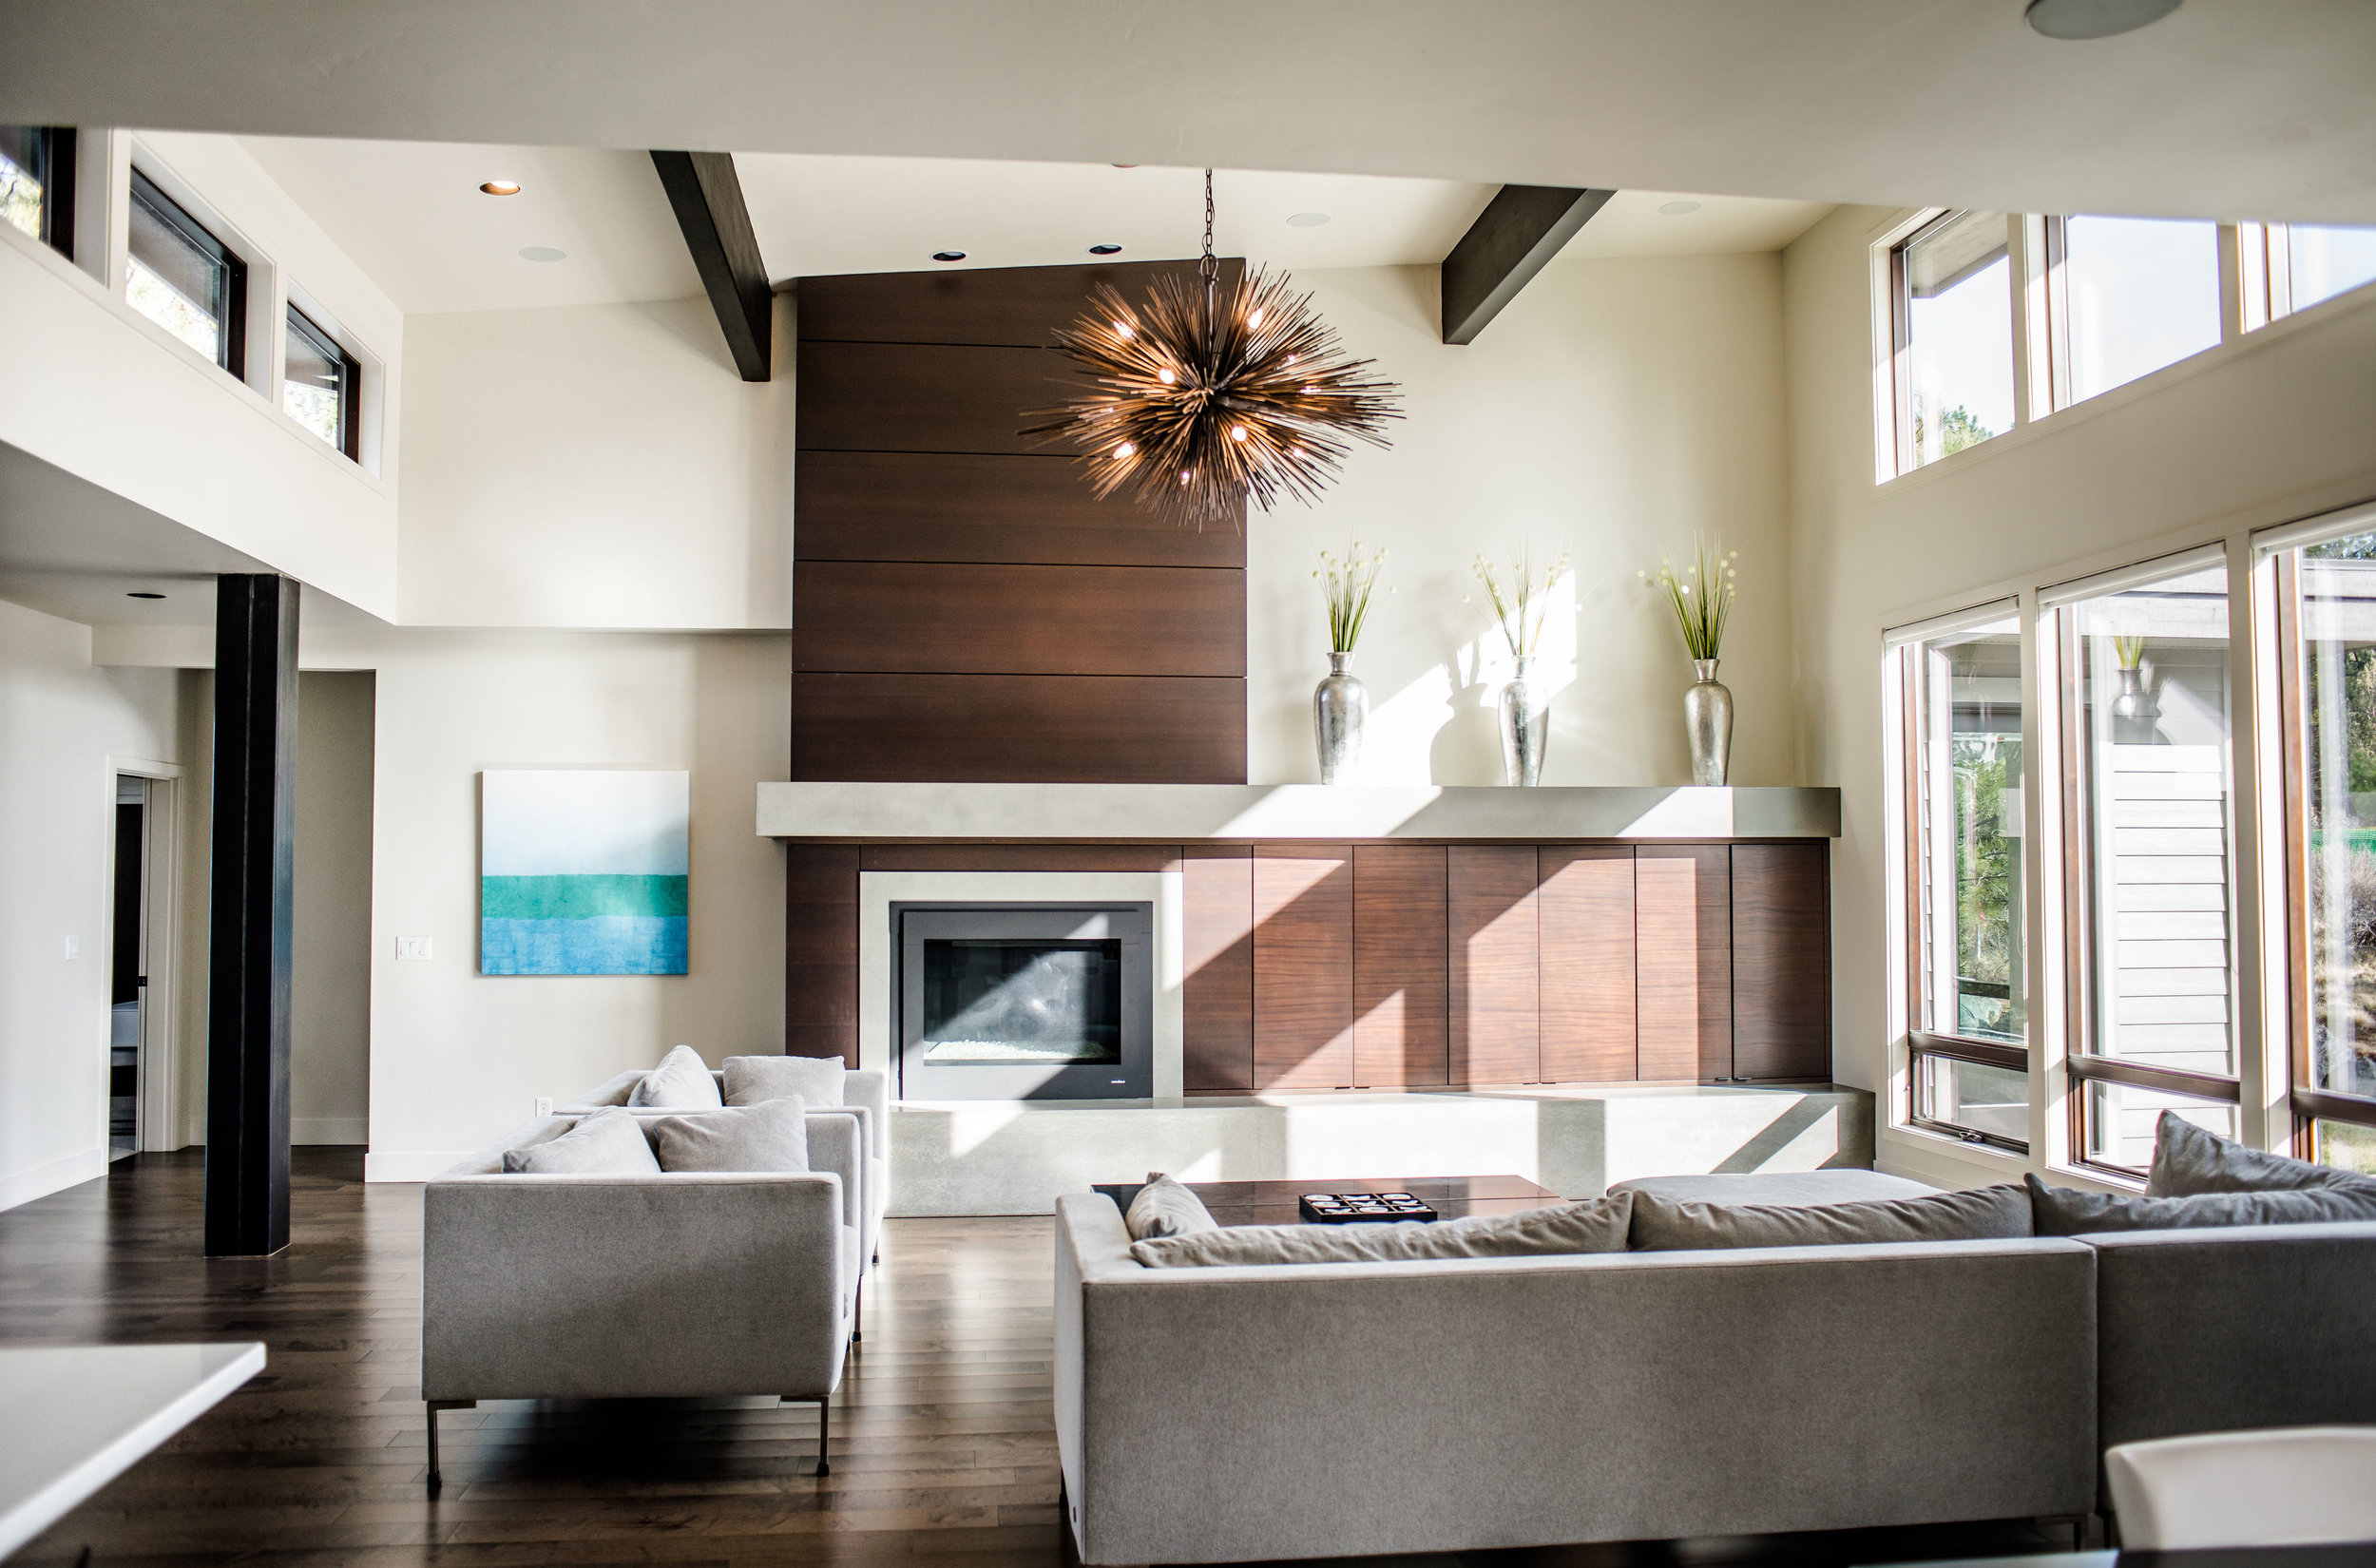 Timberline_Realty_19465_Randall_Ct_Bend_Interiorr_By_Talia_Galvin(13of55).jpg